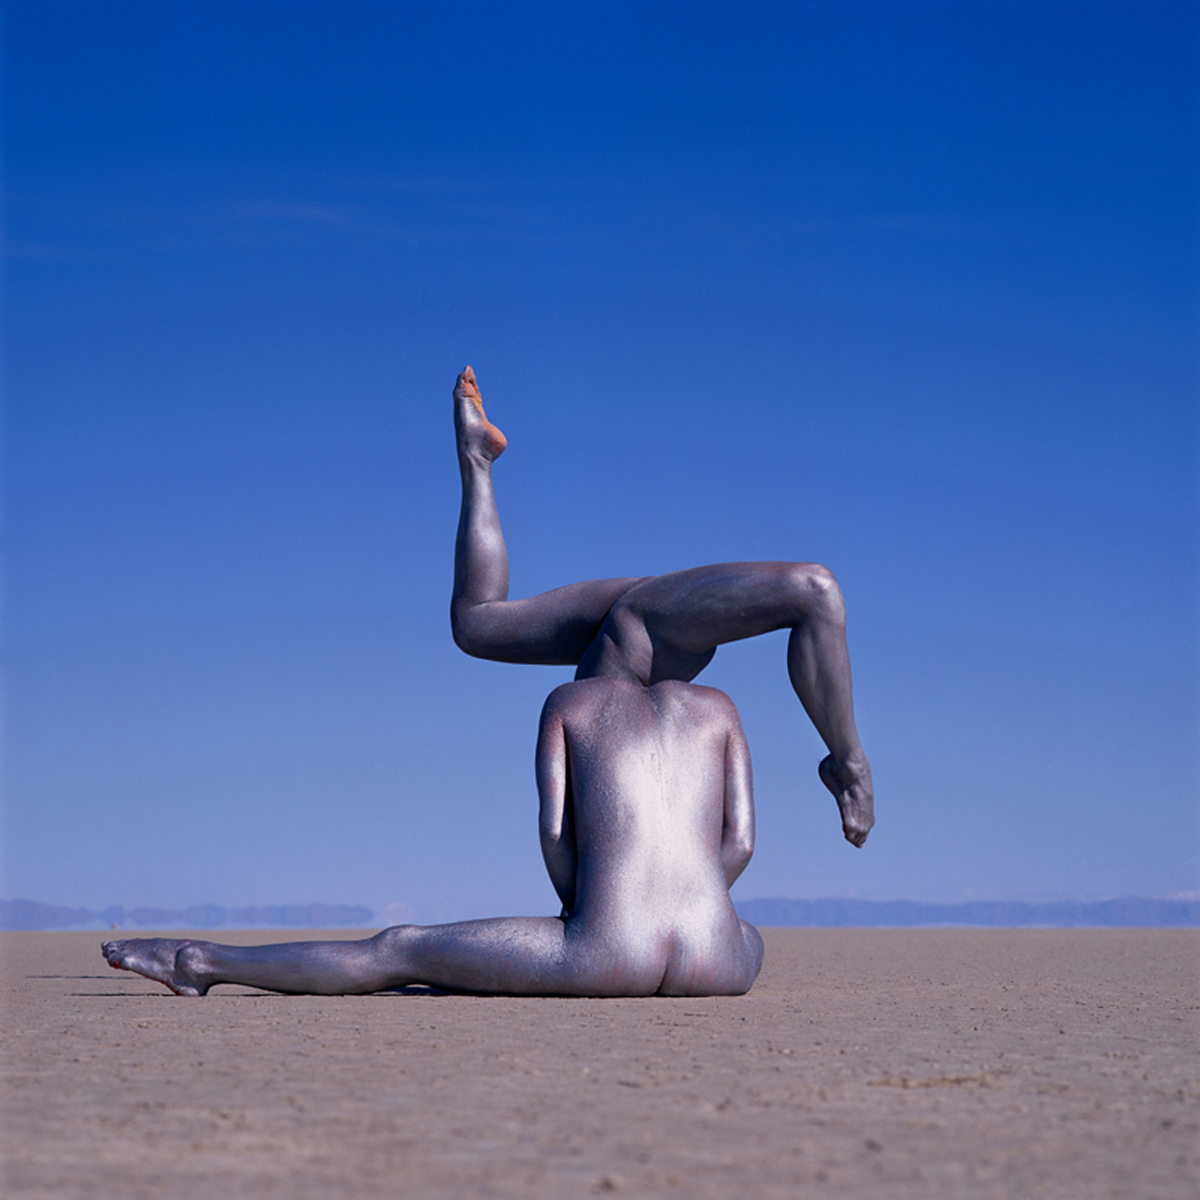 leap into The blue jean paul bourdier photography gessato gblog 10